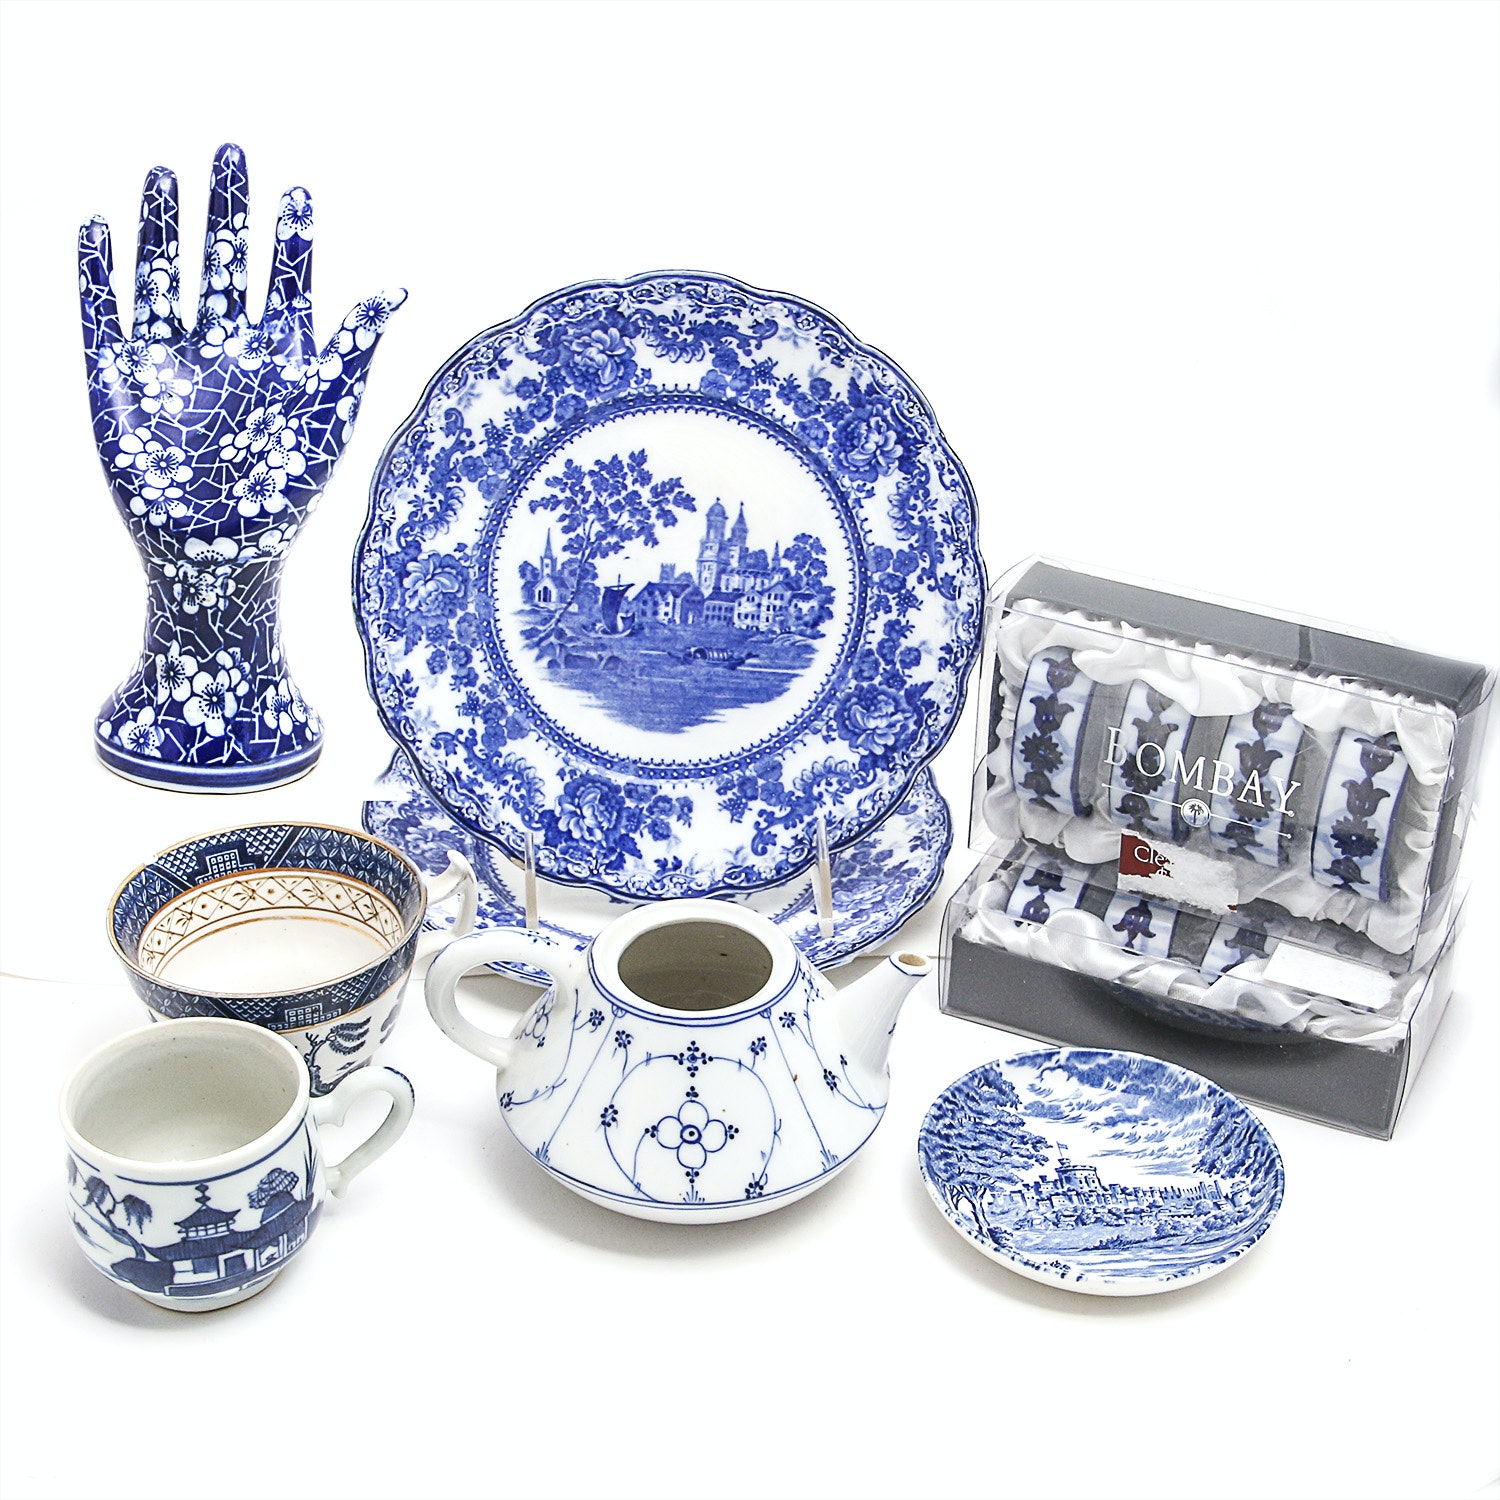 Collection of Blue and White Asian Inspired Tableware and Home Decor